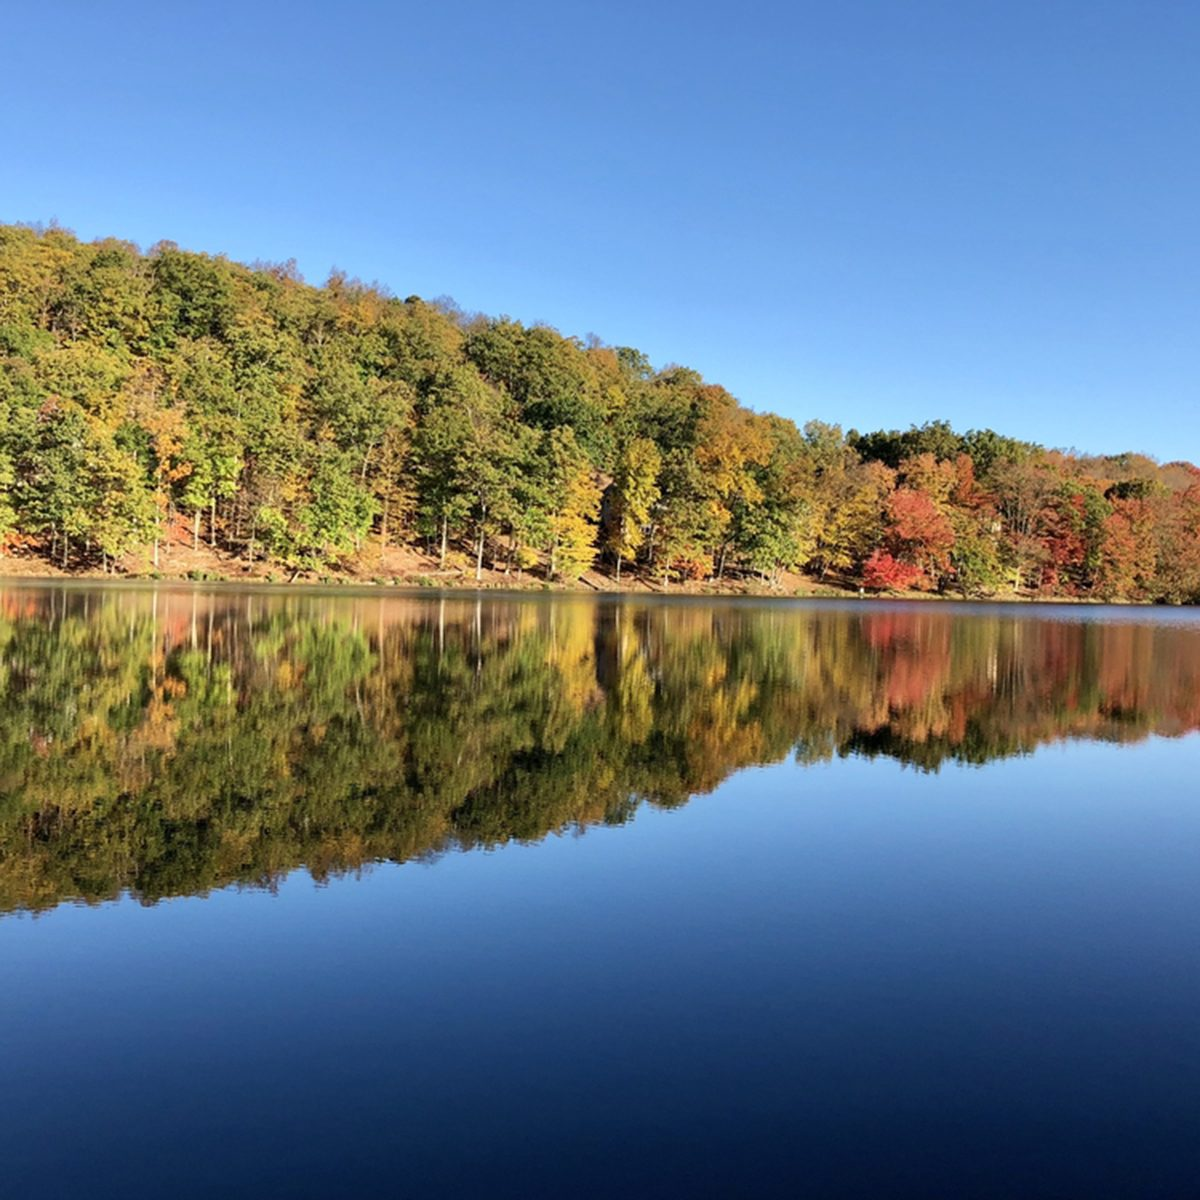 Serene lake discovered in the Pocono Mountains on a beautiful Fall morning.